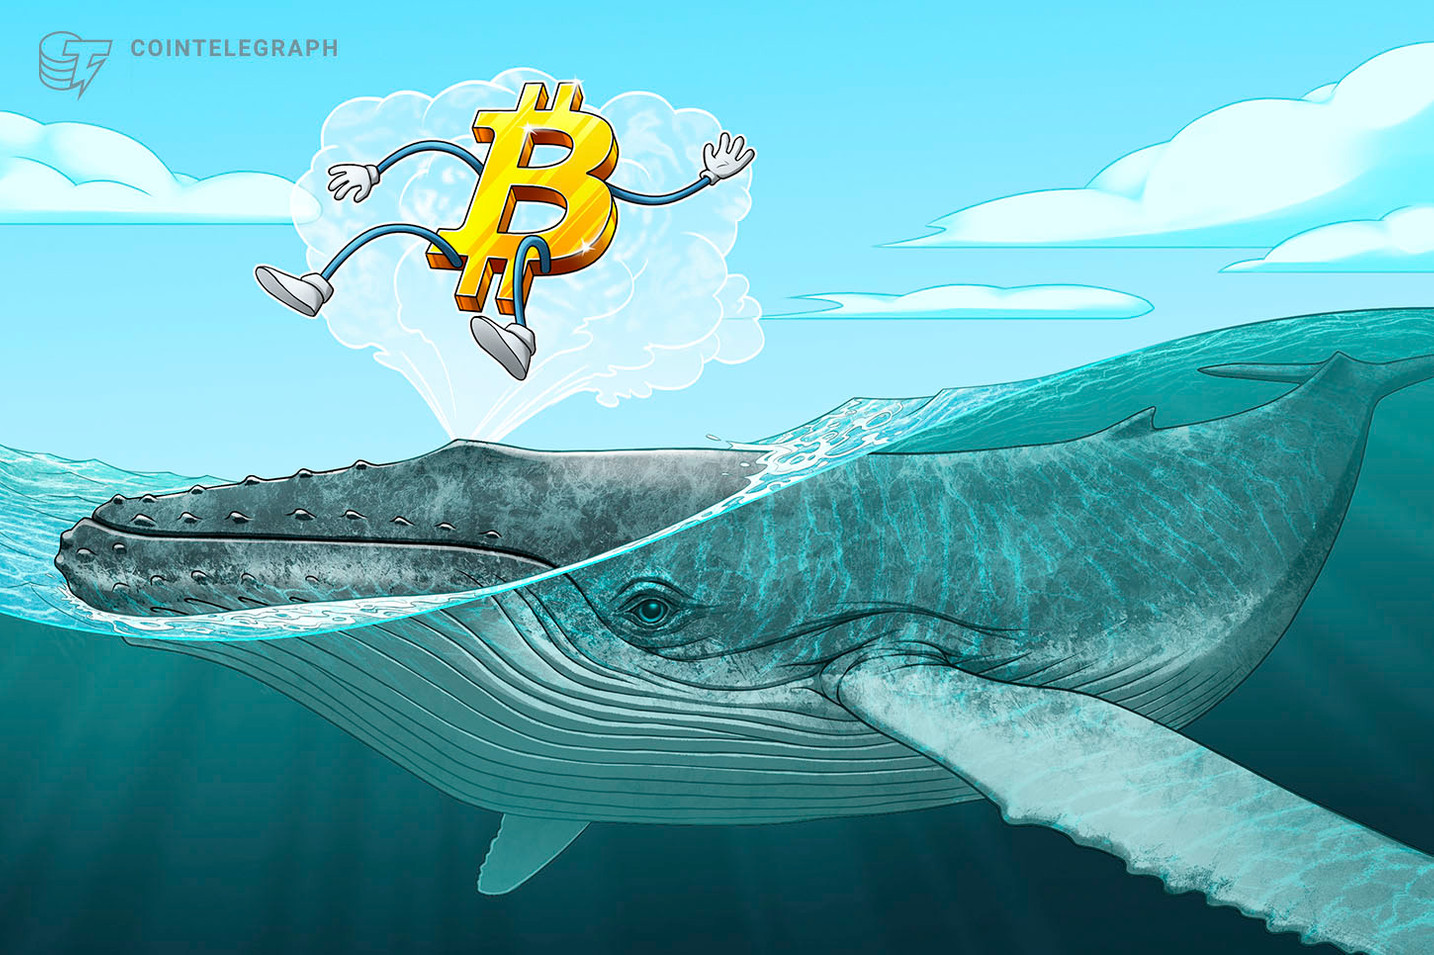 Bitcoin whale from 2010 moves 100 BTC for first time in 11 years